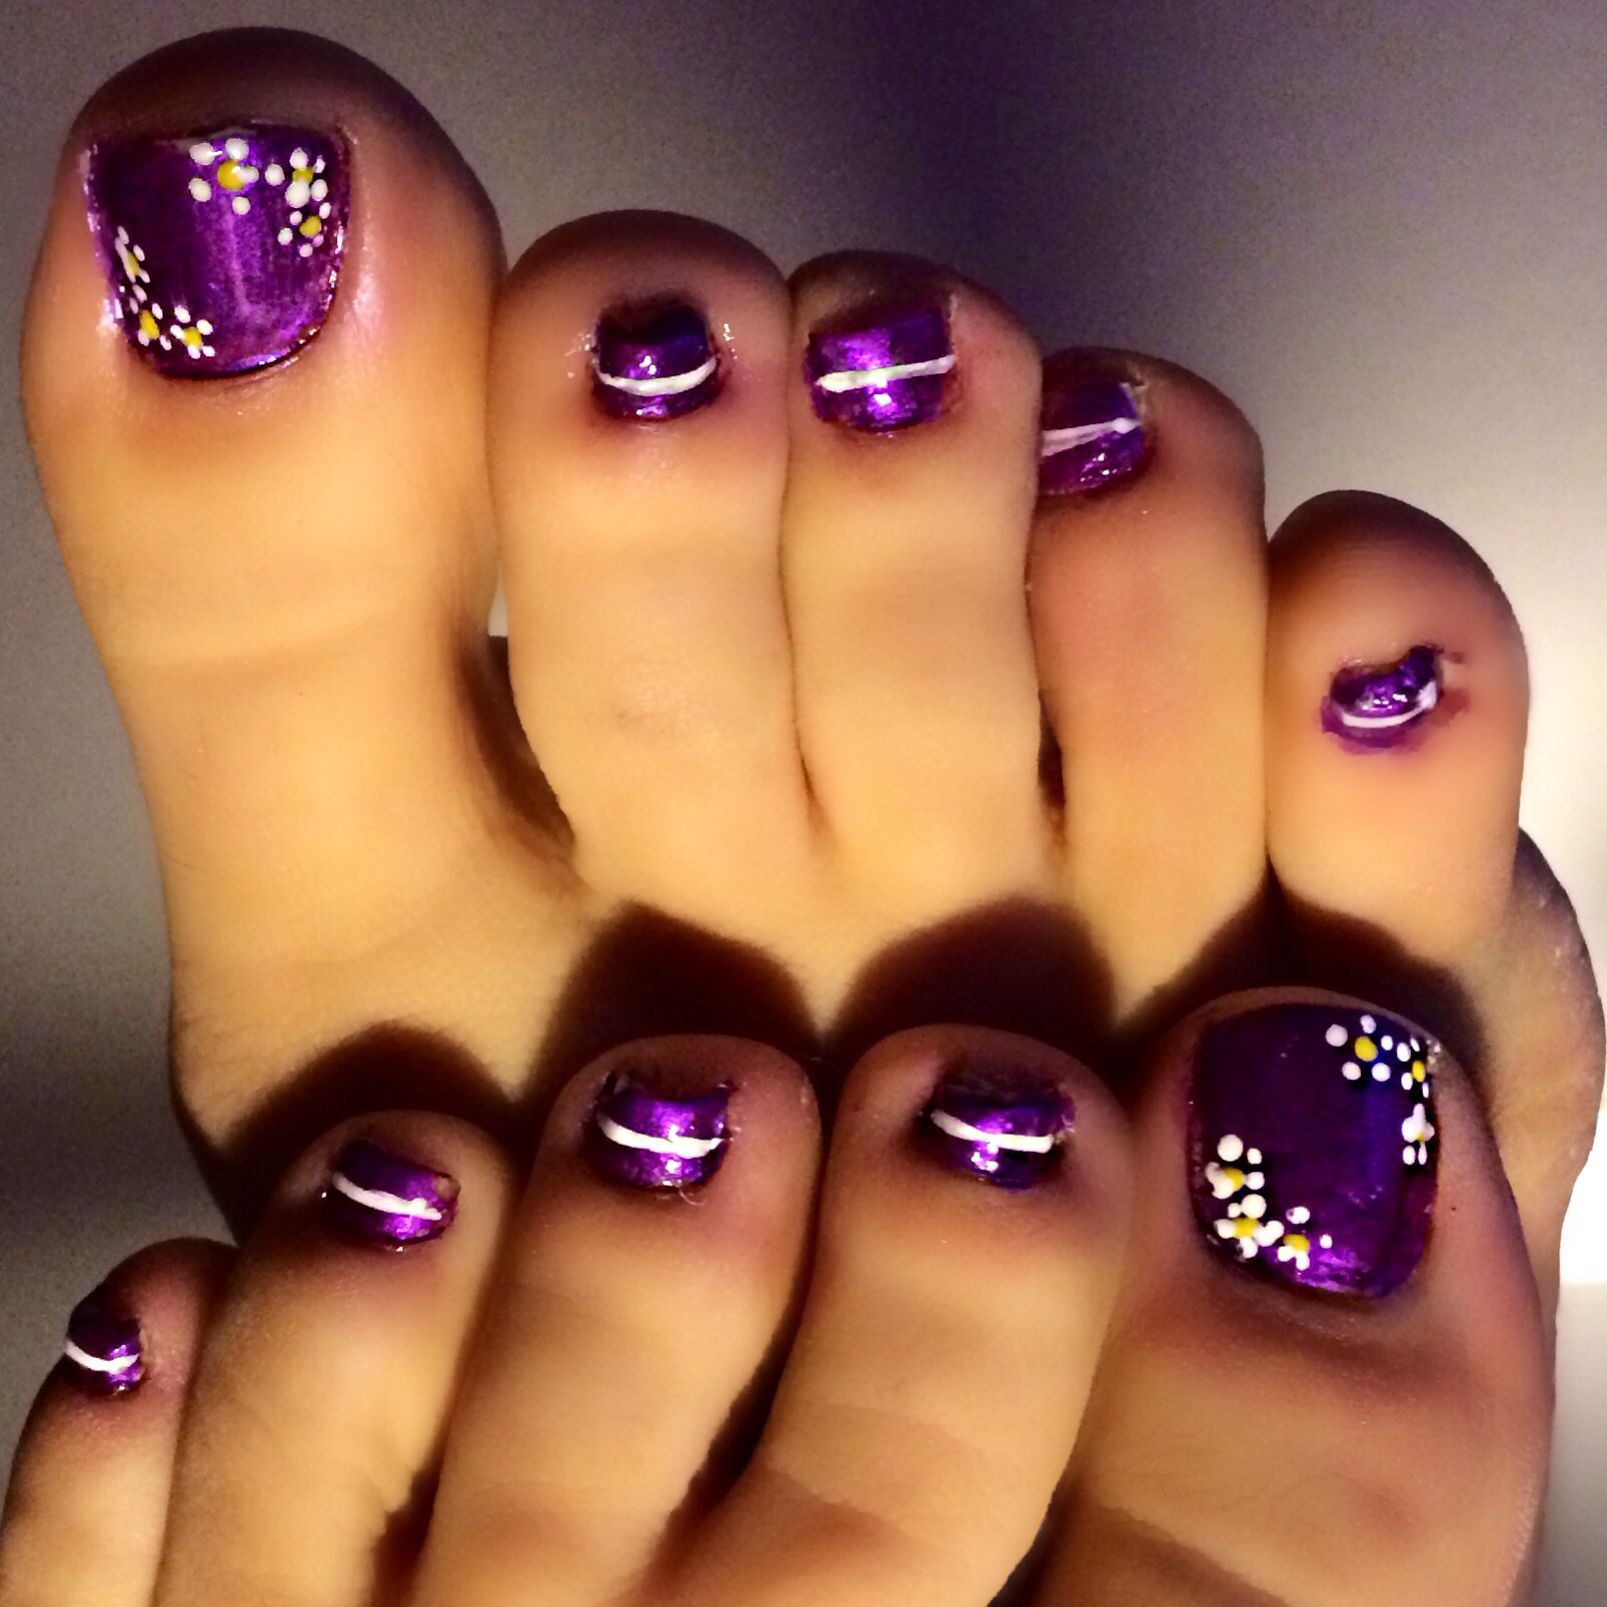 Easy Toe Nail Art Designs: Diy Pedicure. Flower Toenails. Simple Nail Art Done With A